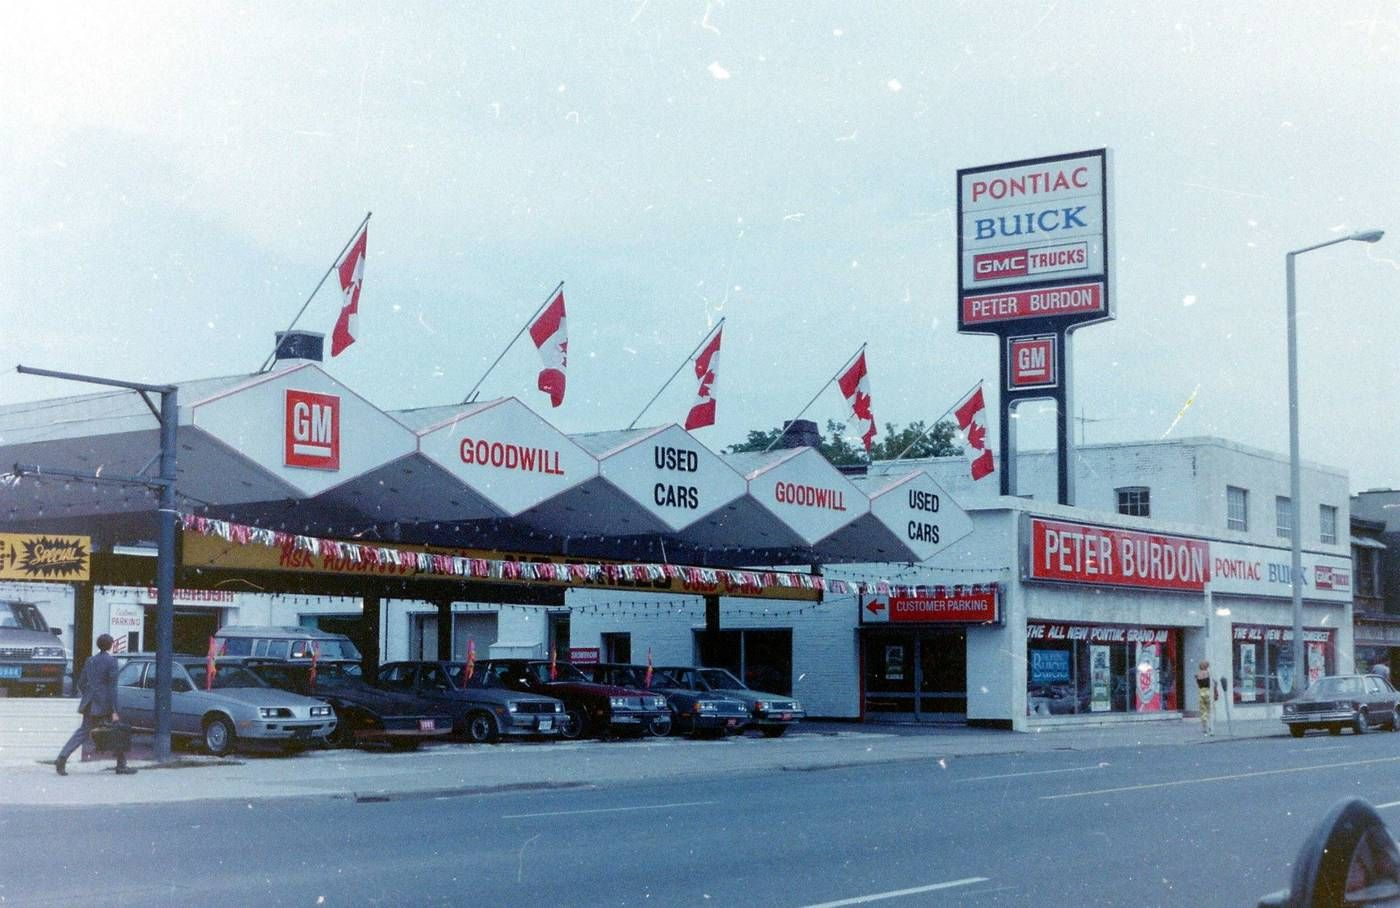 Peter Burdon Motors Pontiac Buick Gmc Dealership Toronto